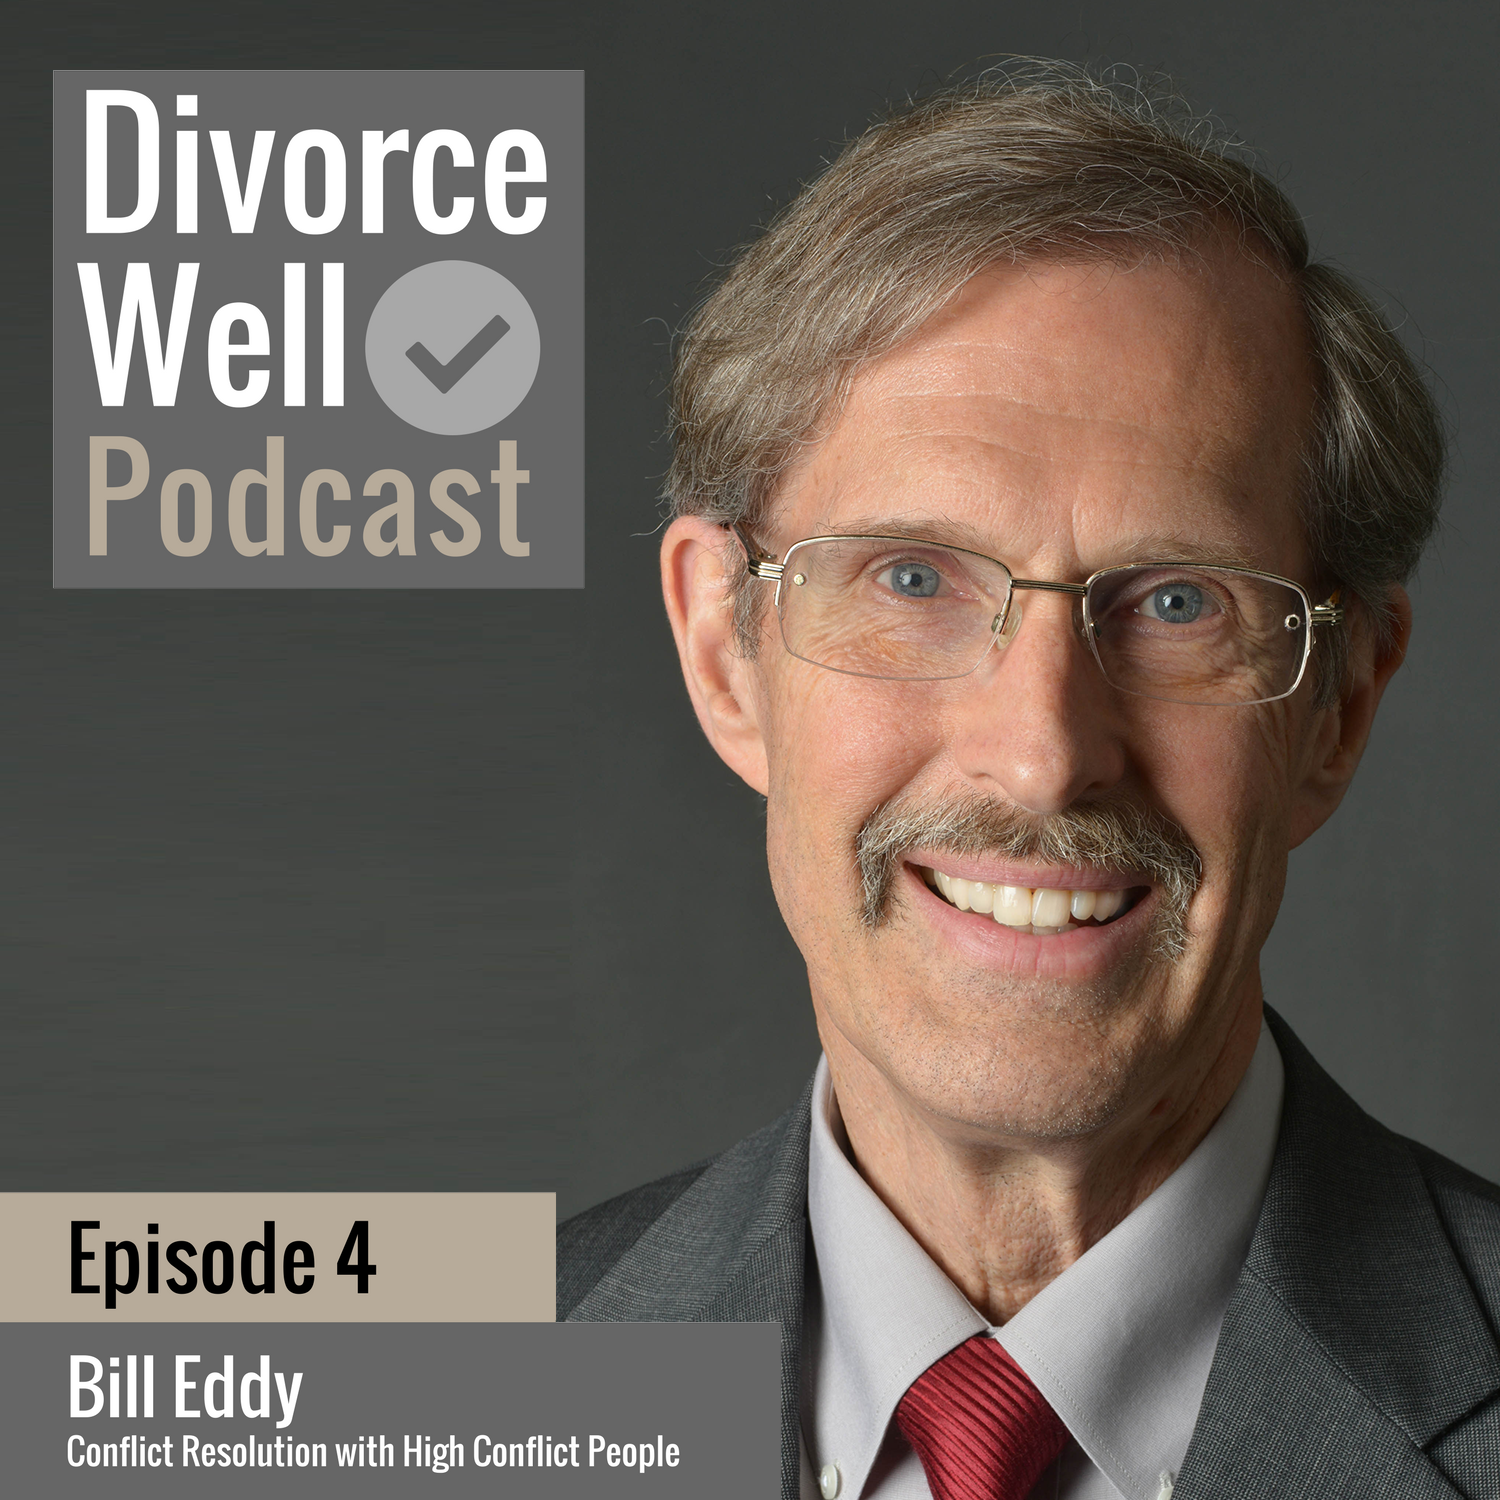 The Divorce Well Podcast - 04 - High Conflict People and Divorce, with Bill Eddy